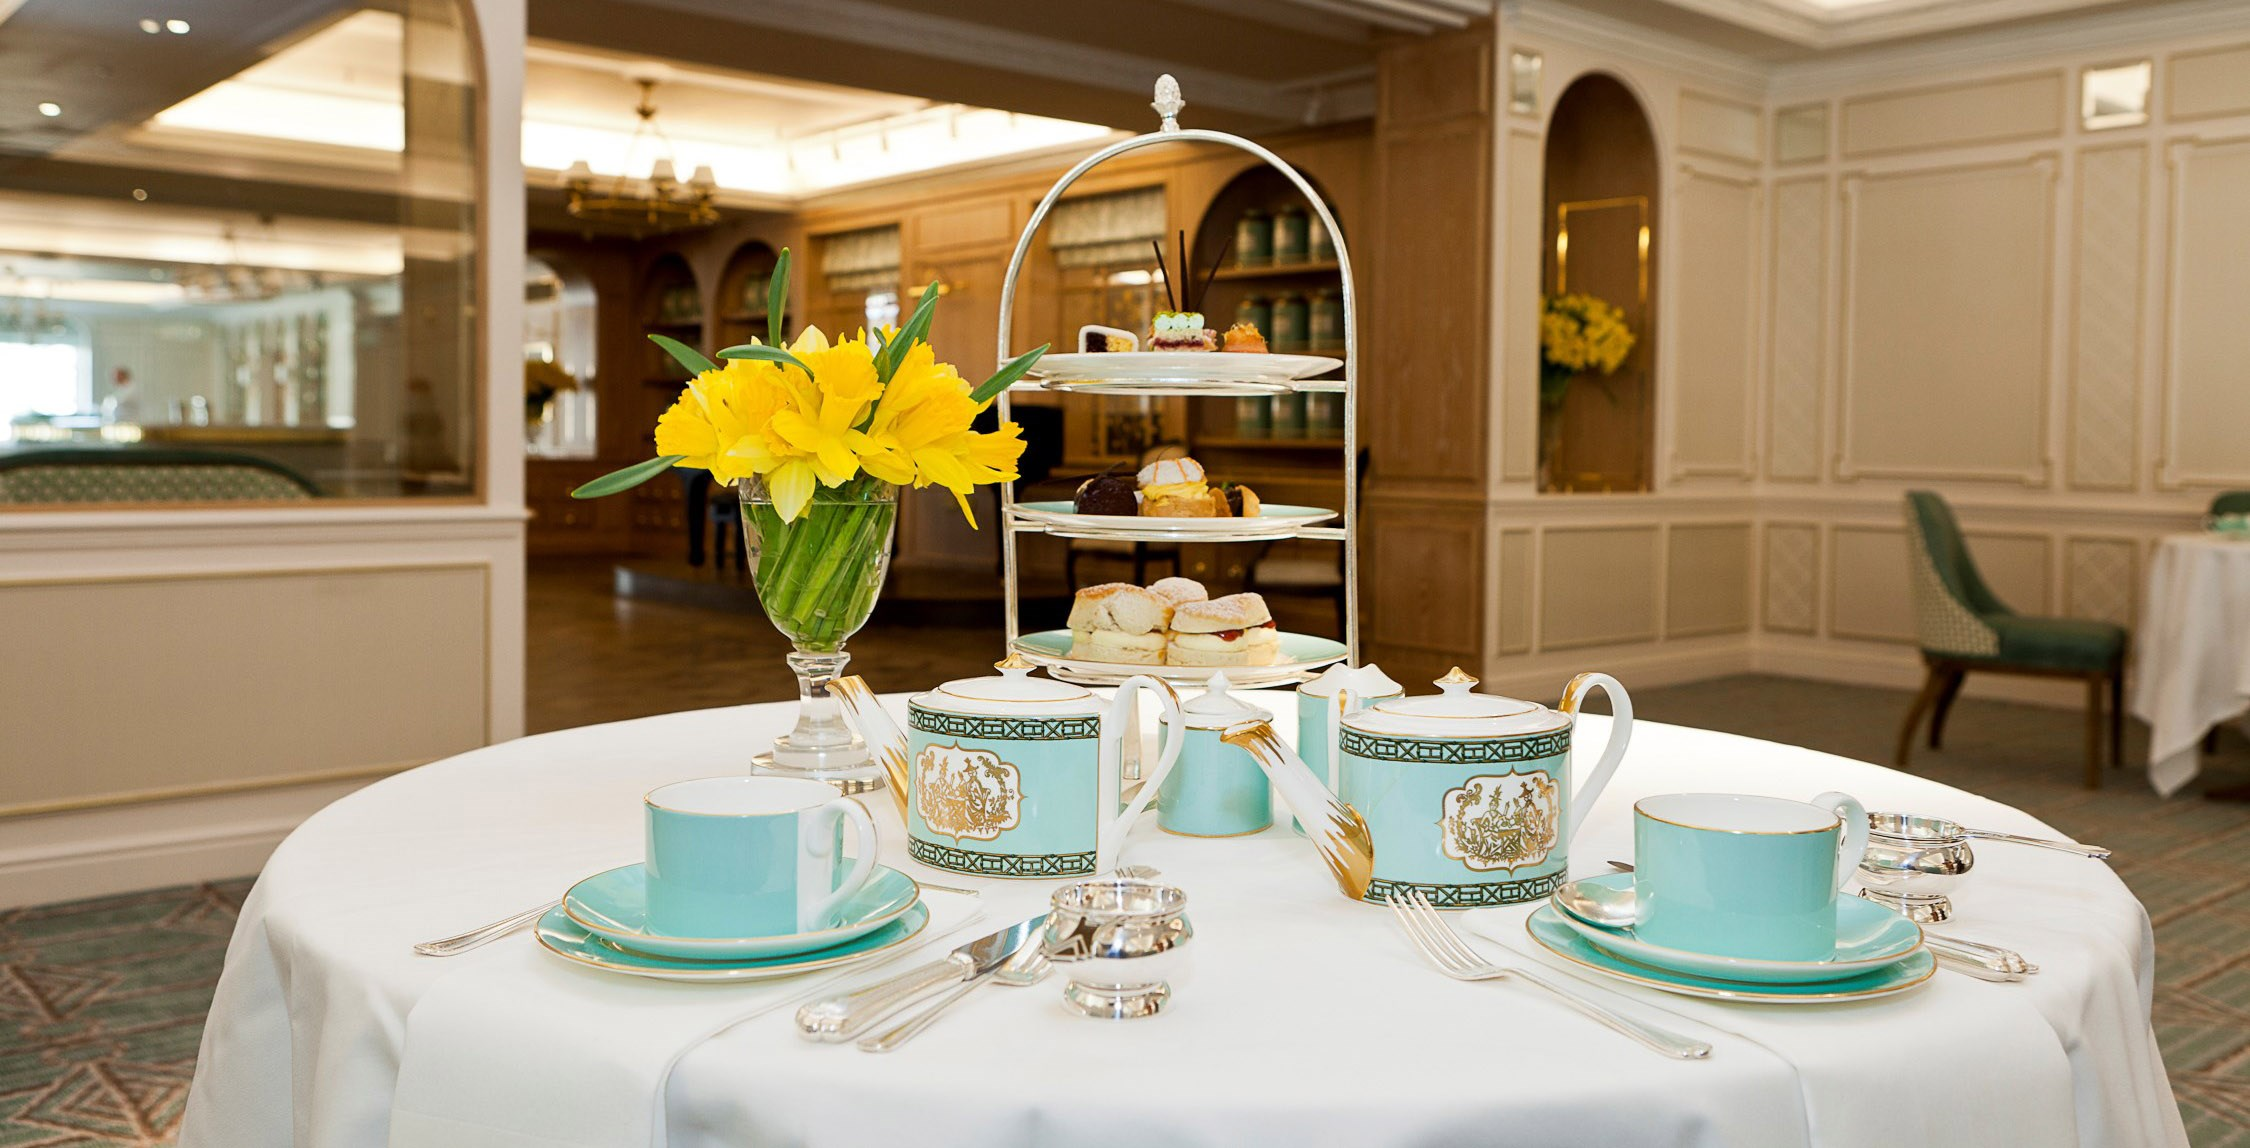 Afternoon Tea In London Best 28 Tea Rooms And Hotels To